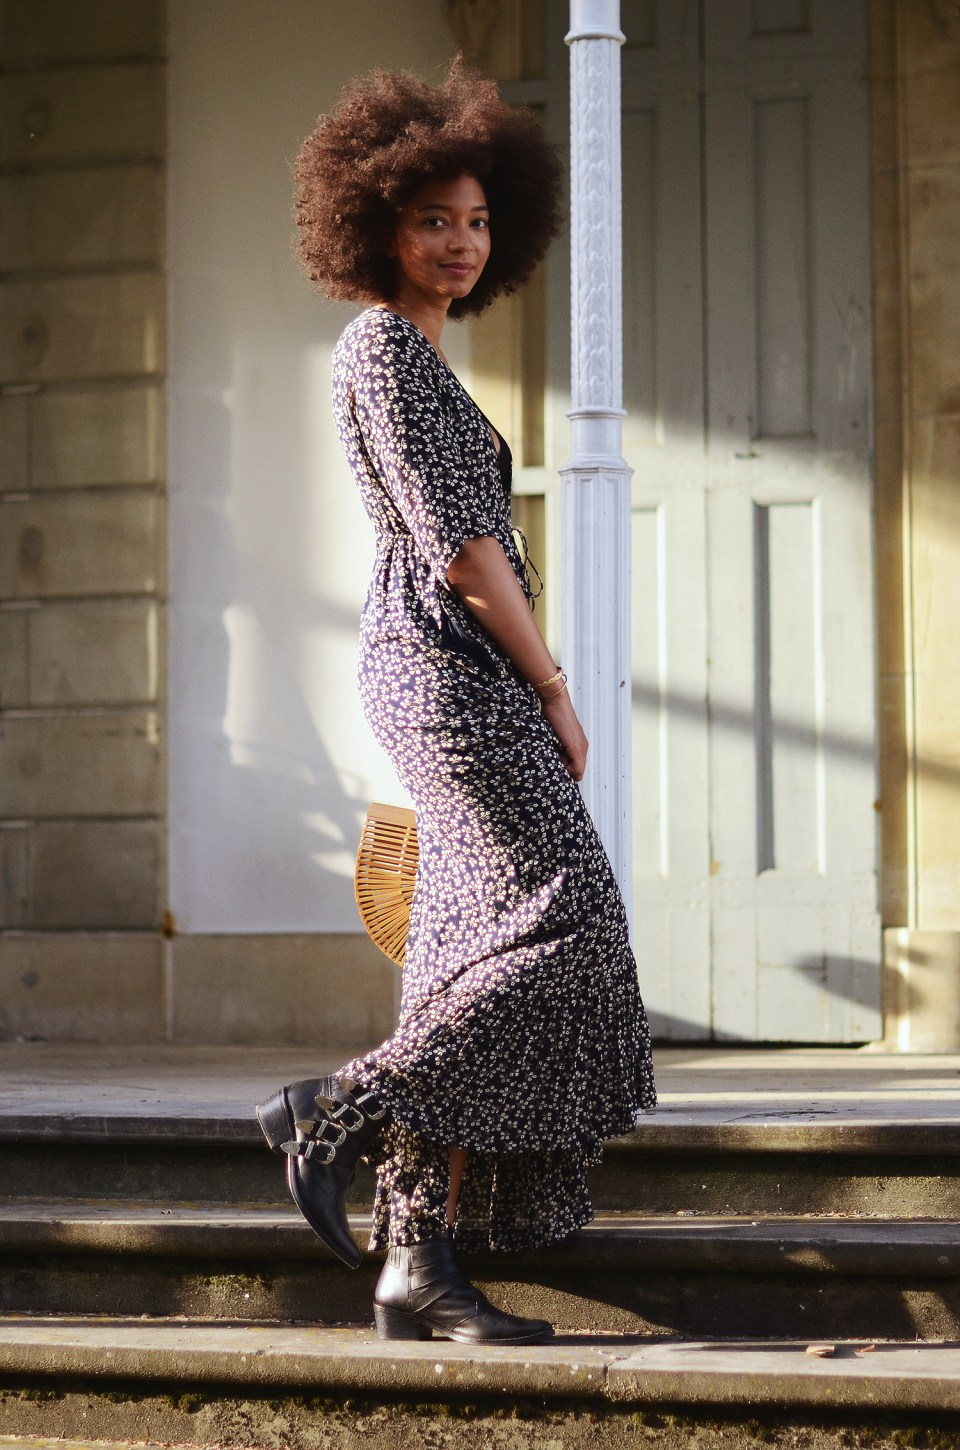 mercredie-blog-mode-geneve-blogueuse-bloggeuse-suisse-swiss-switzerland-robe-ganni-dress-cult-gaia-bag-small-toga-pulla-boots-buckled-afro-hair-nappy-curly-curls-big-fro-cheveux-frises2-1